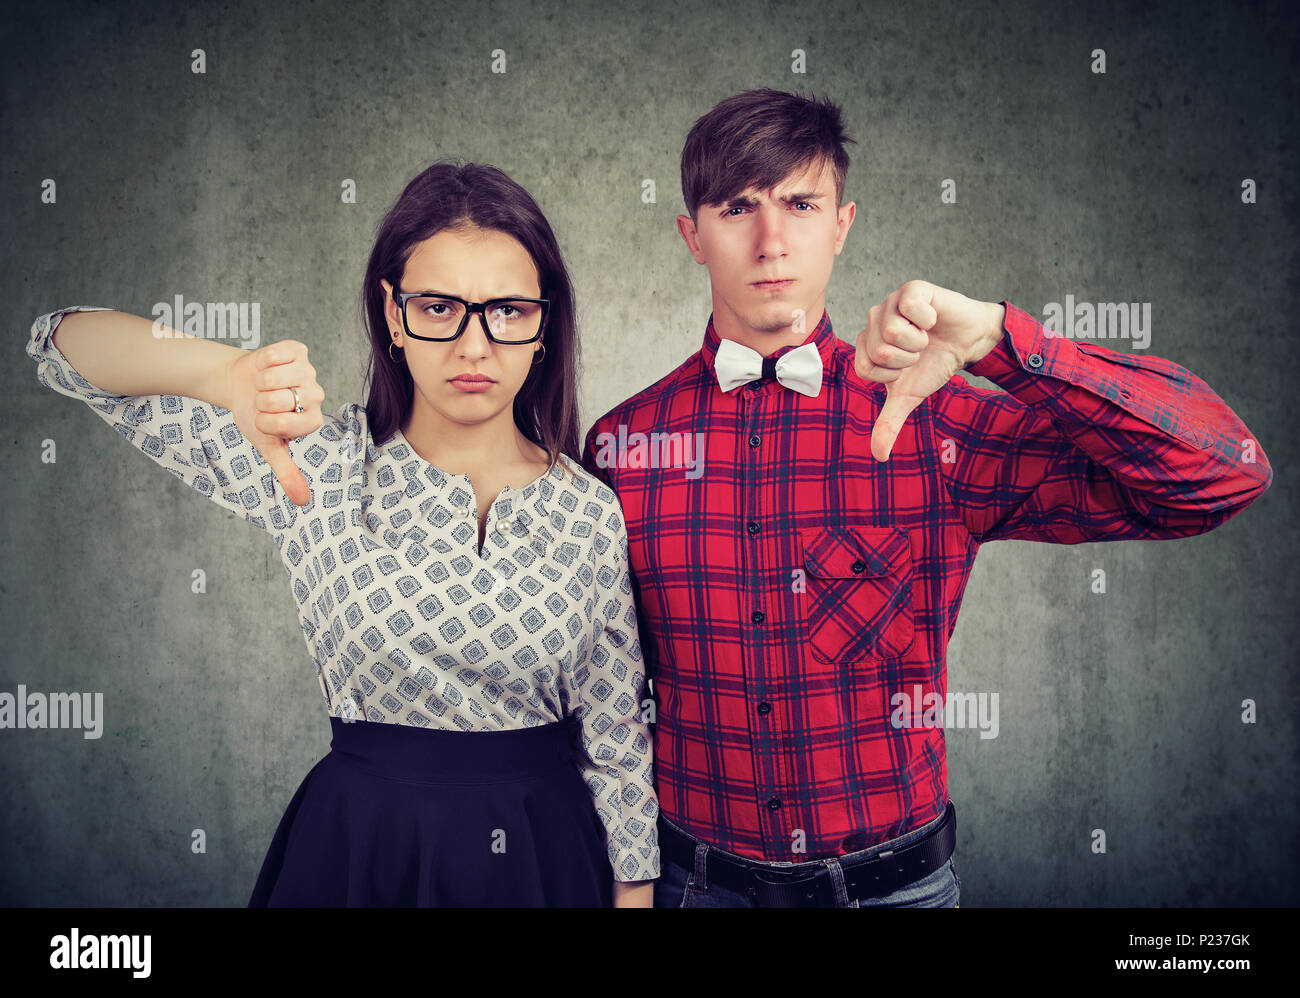 Unhappy grumpy couple giving thumbs down gesture, disagree with something. Displeased young man and woman express nbegative emotions and feelings - Stock Image